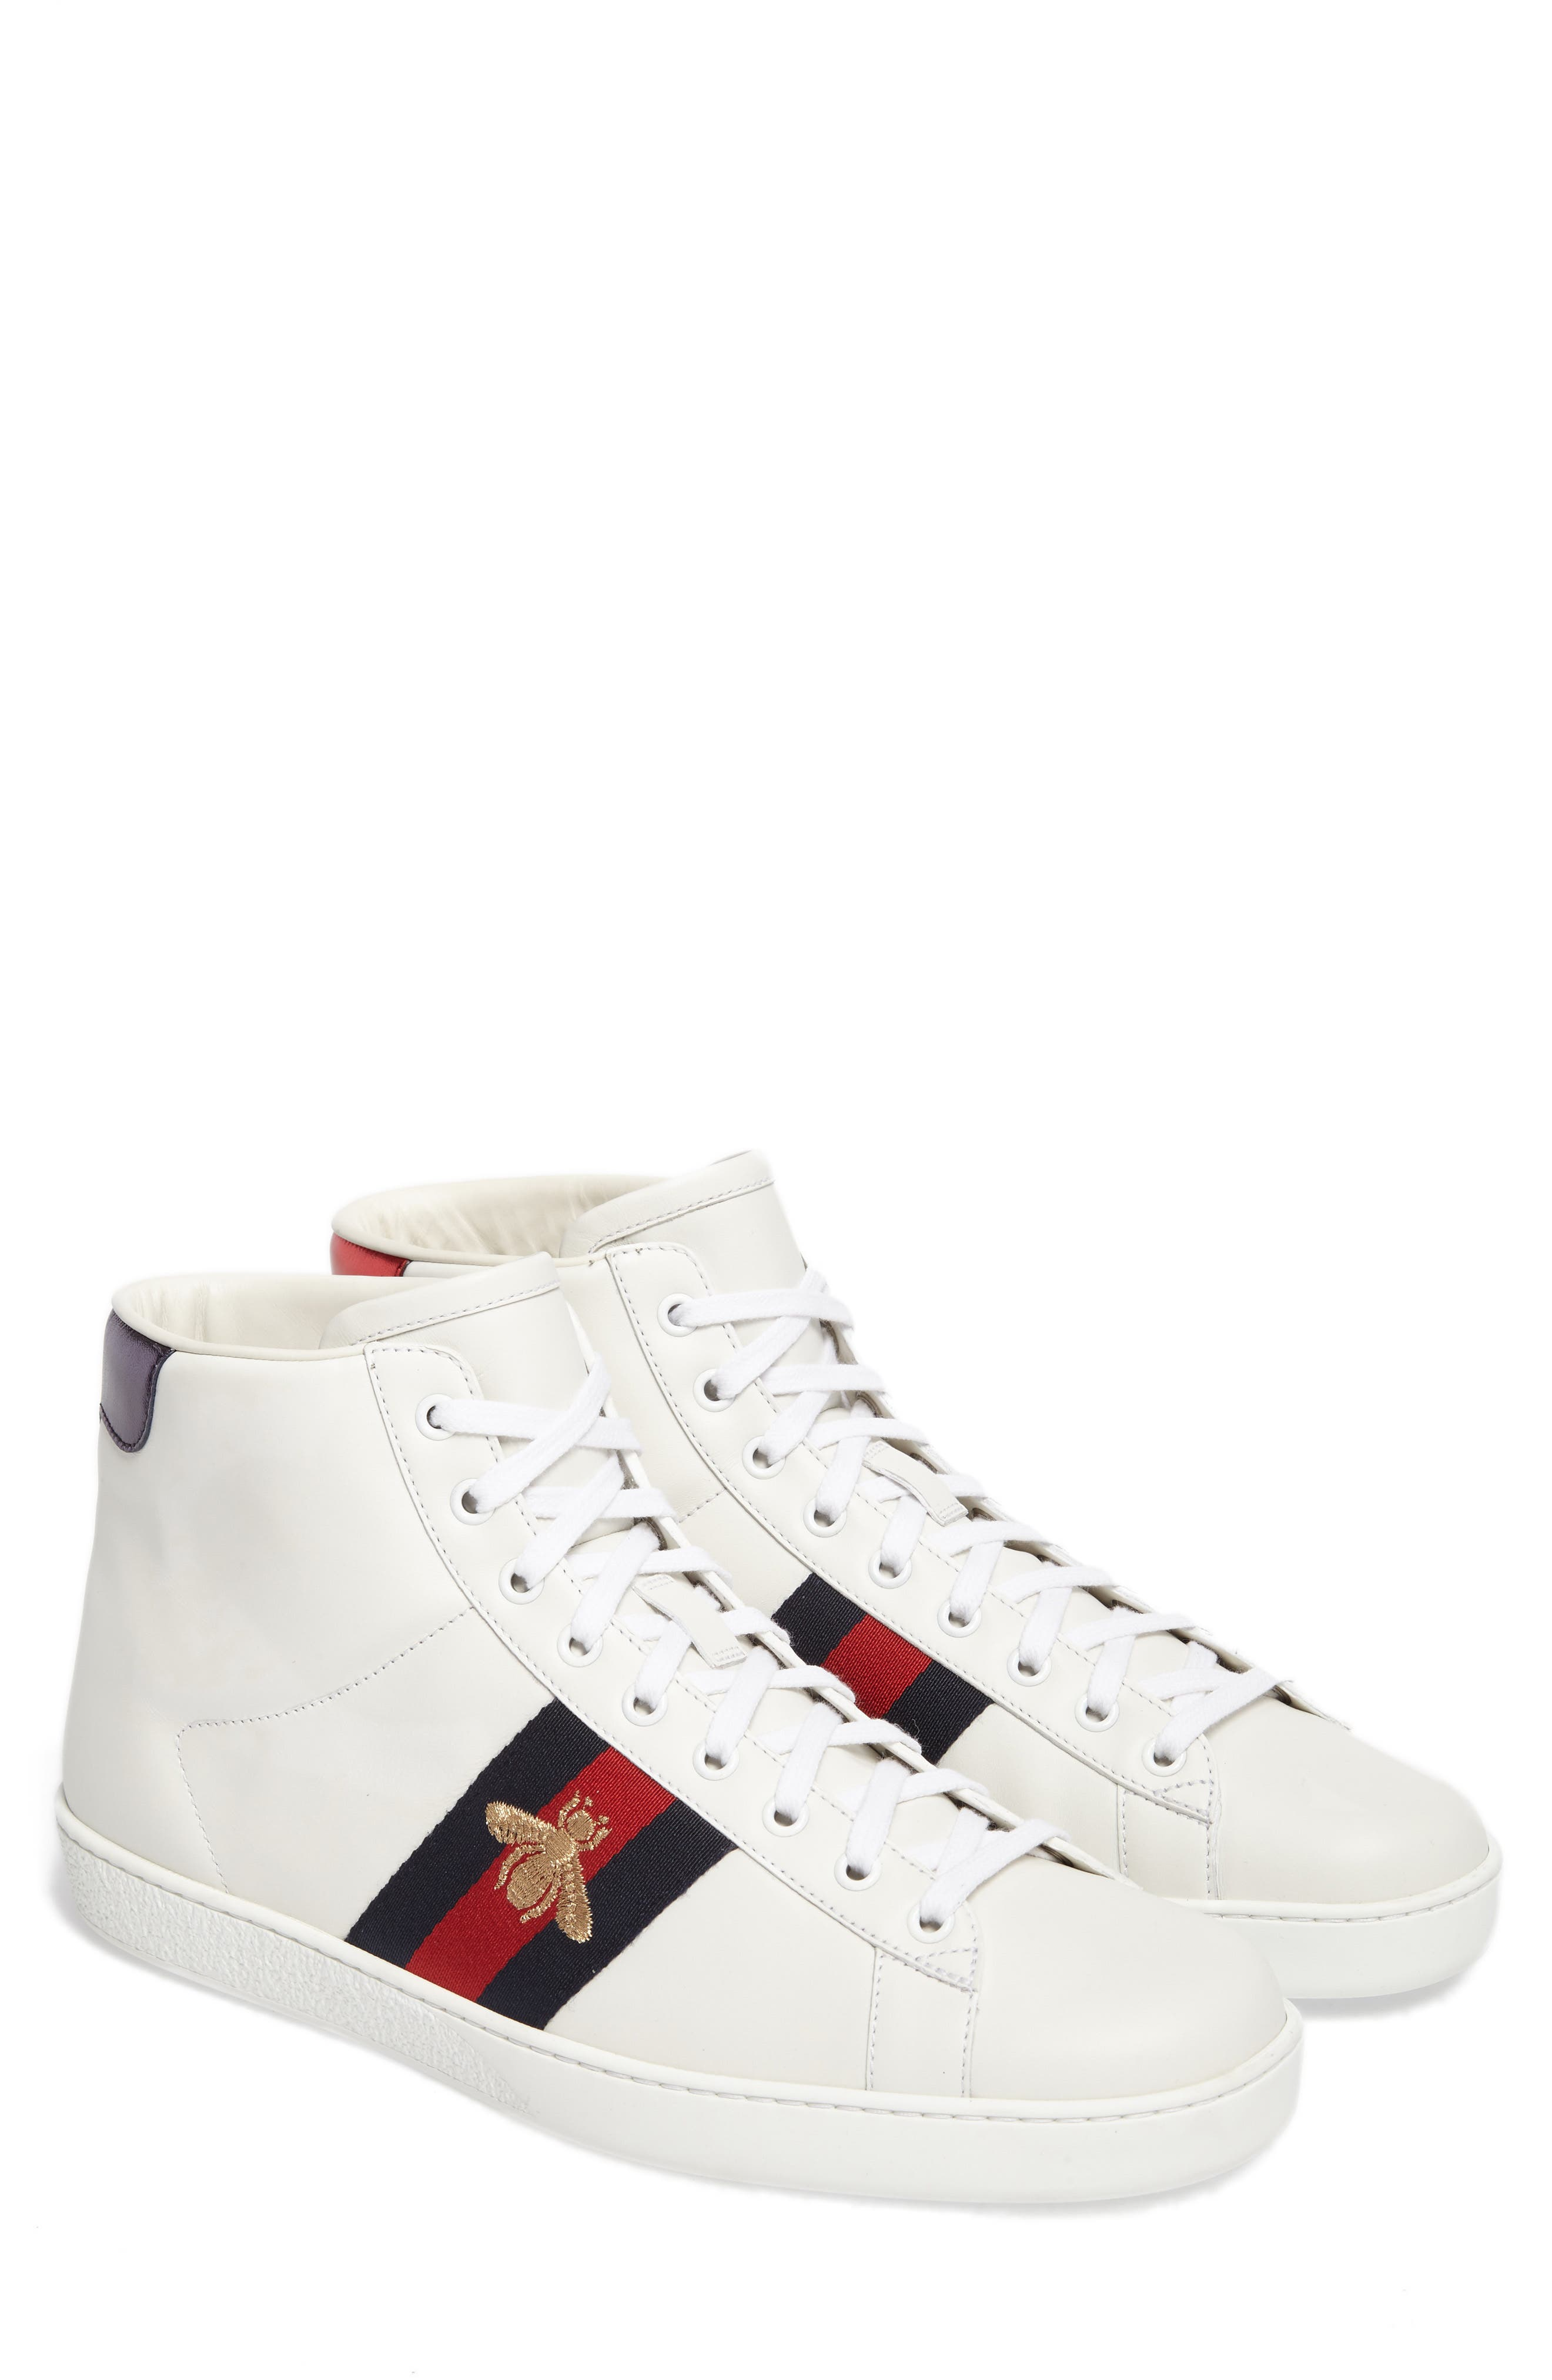 Alternate Image 1 Selected - Gucci New Ace High Bee Sneaker (Men)